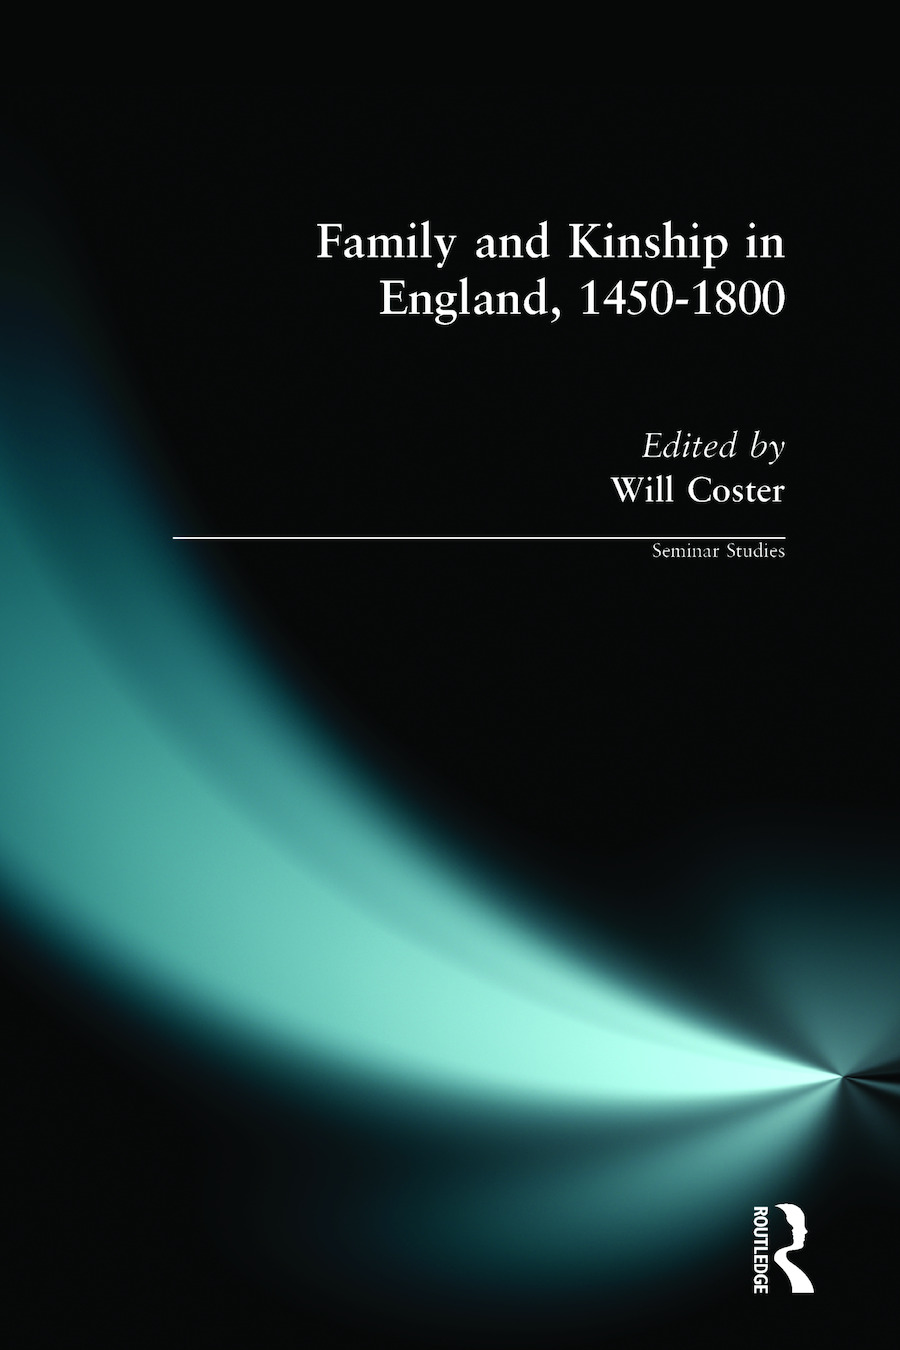 Family and Kinship in England, 1450-1800